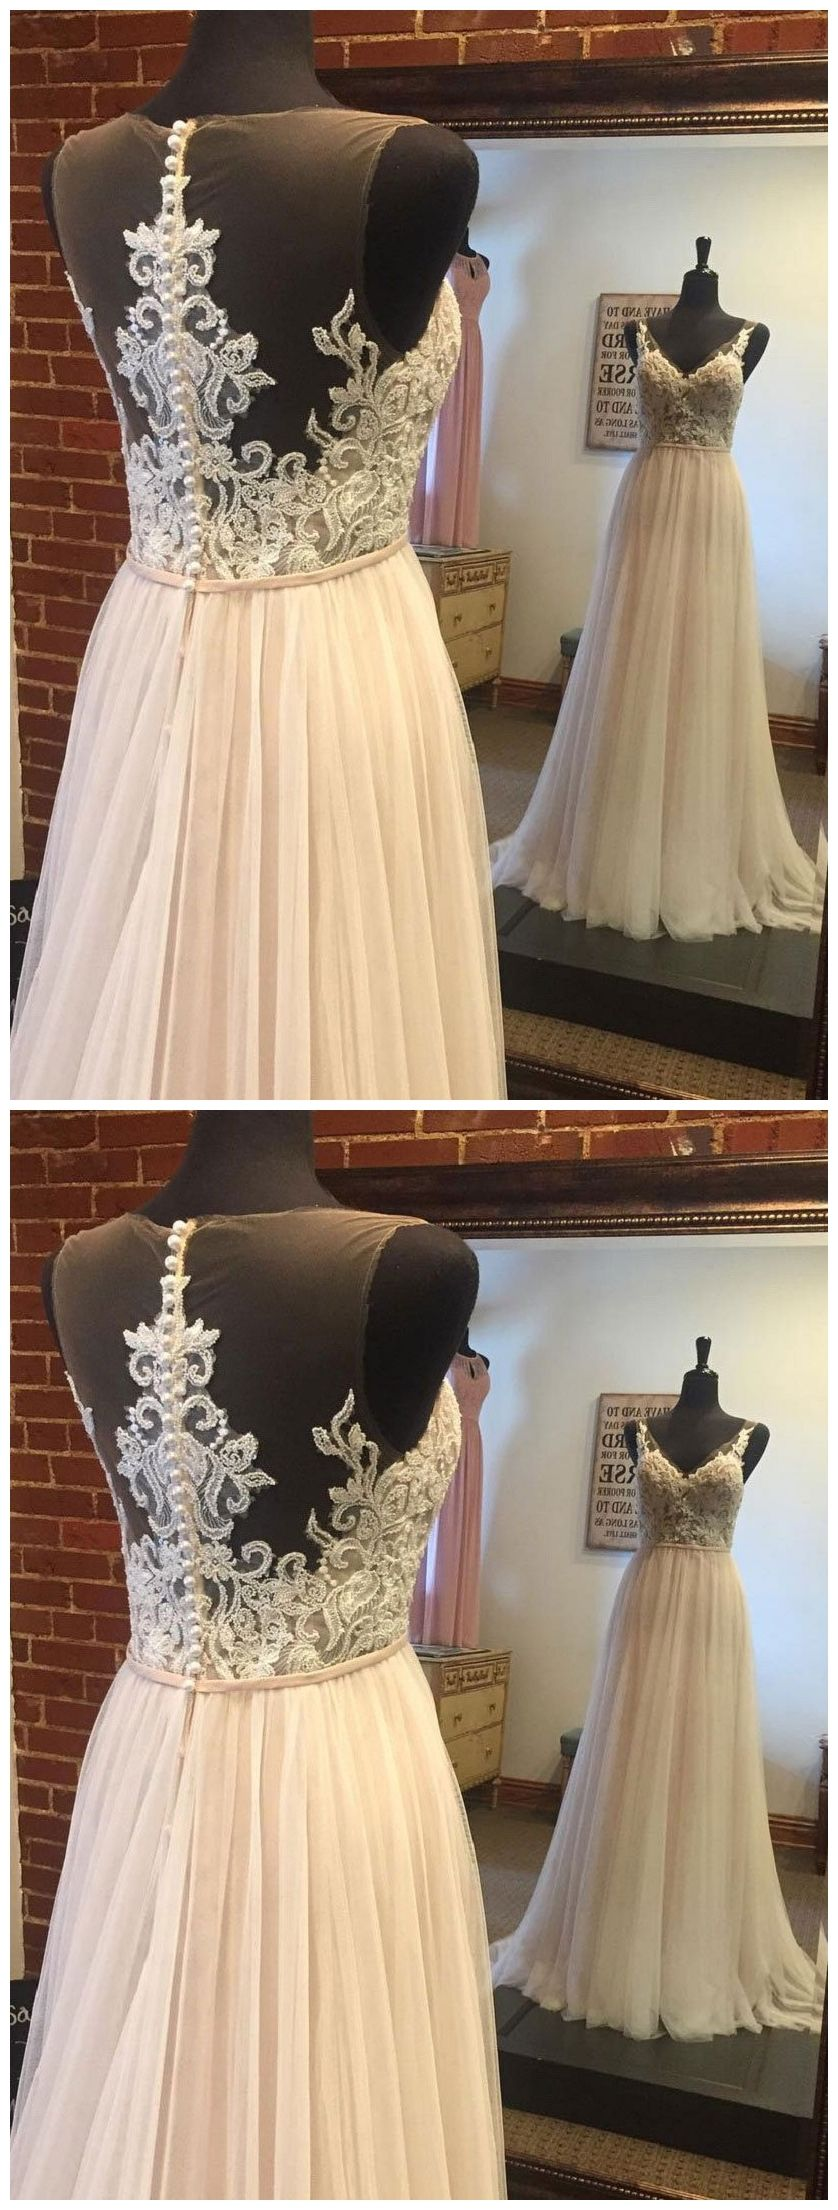 Best dresses to wear to a beach wedding  Aline Lace Appliqued Top Tulle Skirt Summer Beach Wedding Dresses